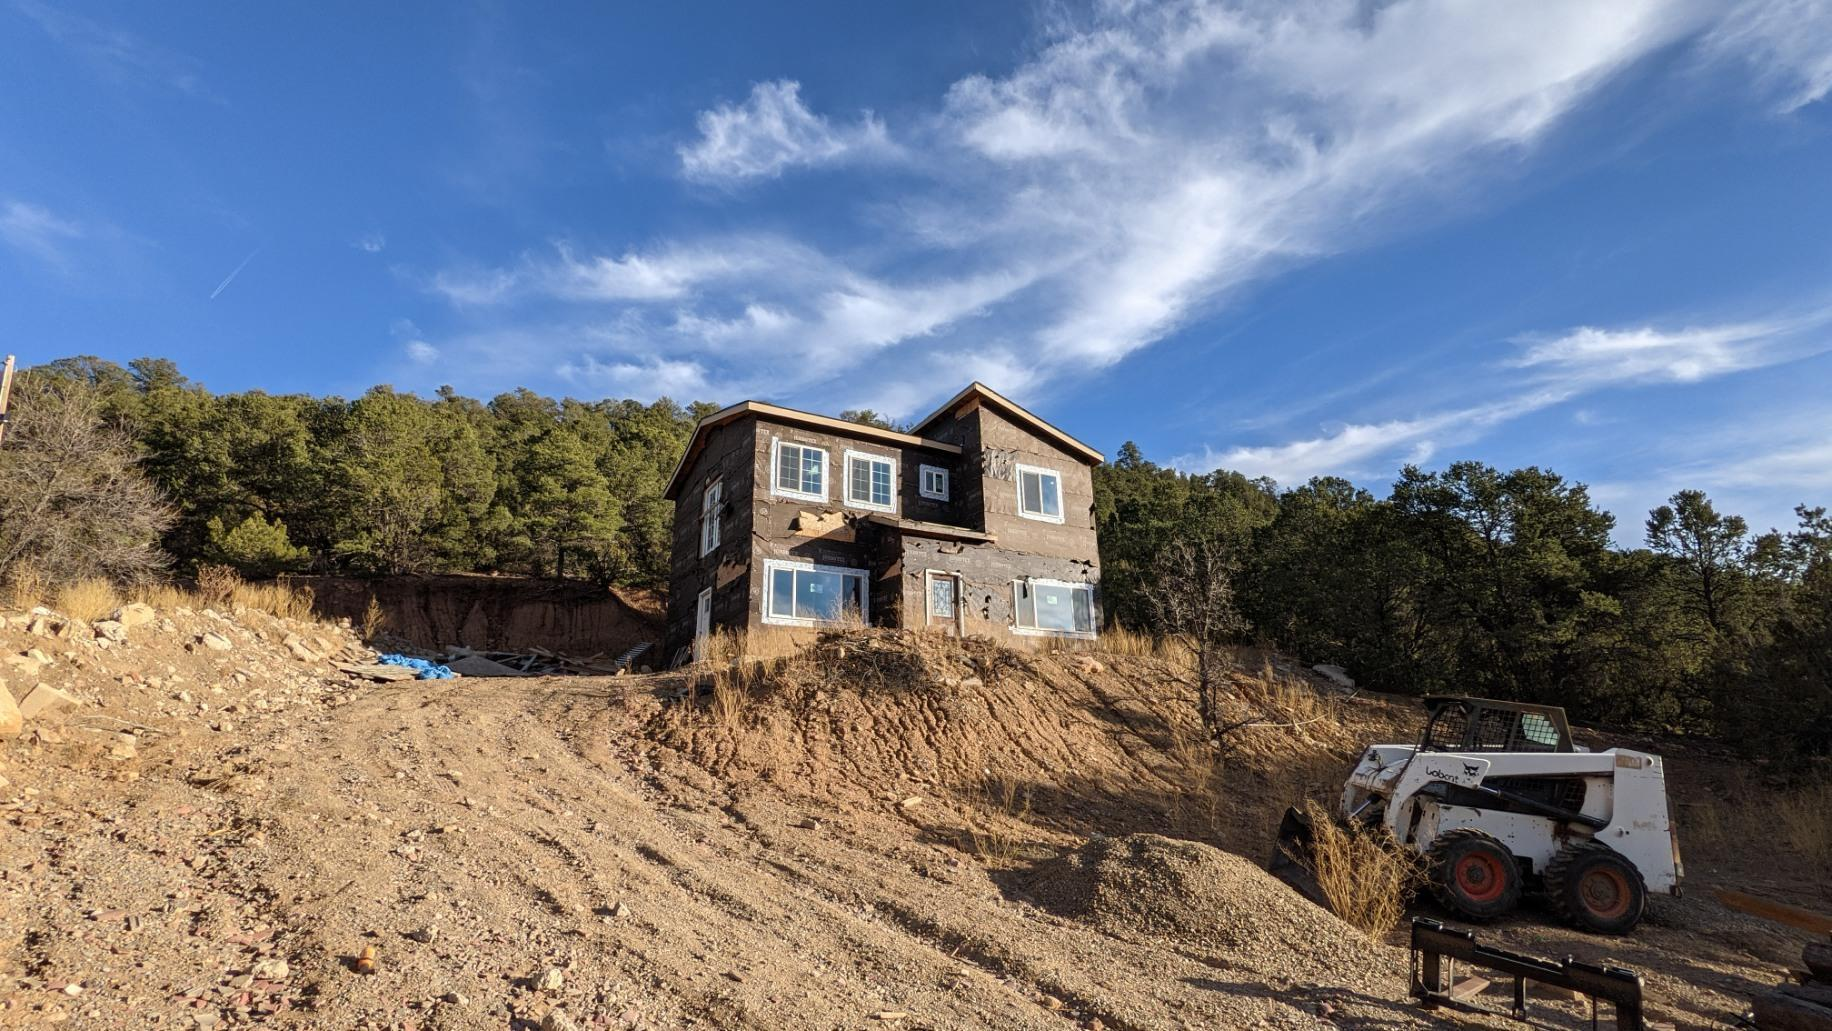 Great opportunity, perfect for contractors or anyone looking to customize their own mountain home!  Only a mile from I-40 and 10 minutes from Northeast Albuq.  The home has spectacular mountain views and approx, 2 acre lot for privacy.  (Being sold as is in it's incomplete status) Construction will continue until an offer is accepted, check for updated info.    2X6 construction, framed with windows and roof, Plumbing and electric is installed, should be permitted this week.   House is entirely electric, septic installed, 280 ft well with water at 70ft, roughly 10 gallon/min refill rate.  Well rights run with property.  Building permit pulled and is transferable.  Concrete slab and roof is green tagged.   Included in sale, mini split A/C 4 zones, bamboo flooring and bathroom vanities.